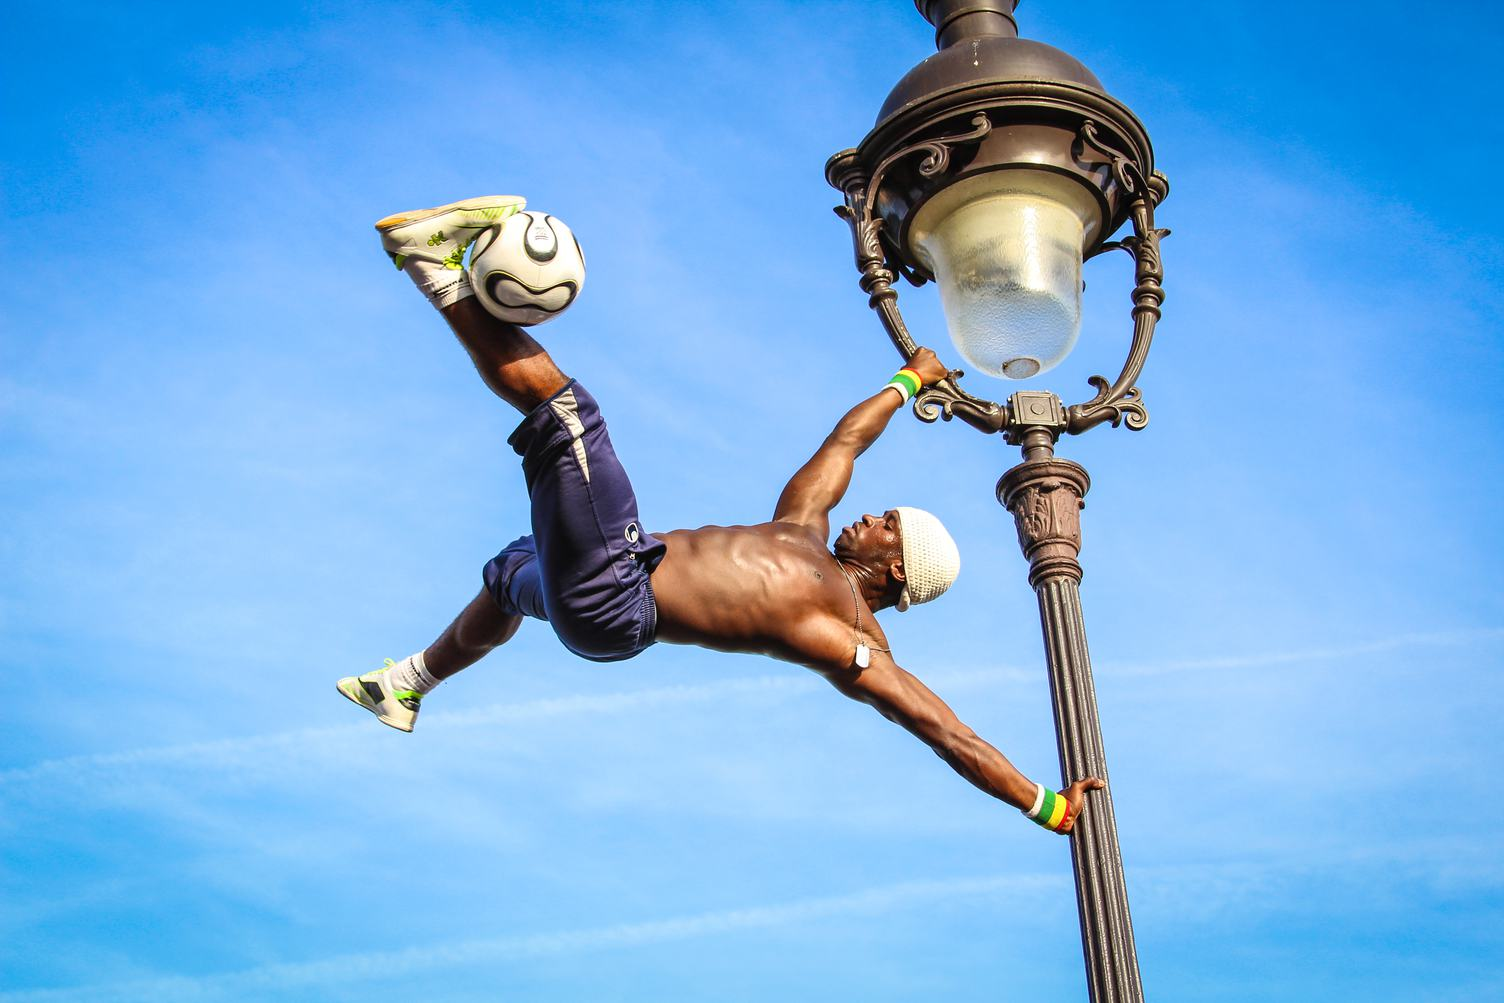 Iya Traore Hanging on Lamp Post with Ball